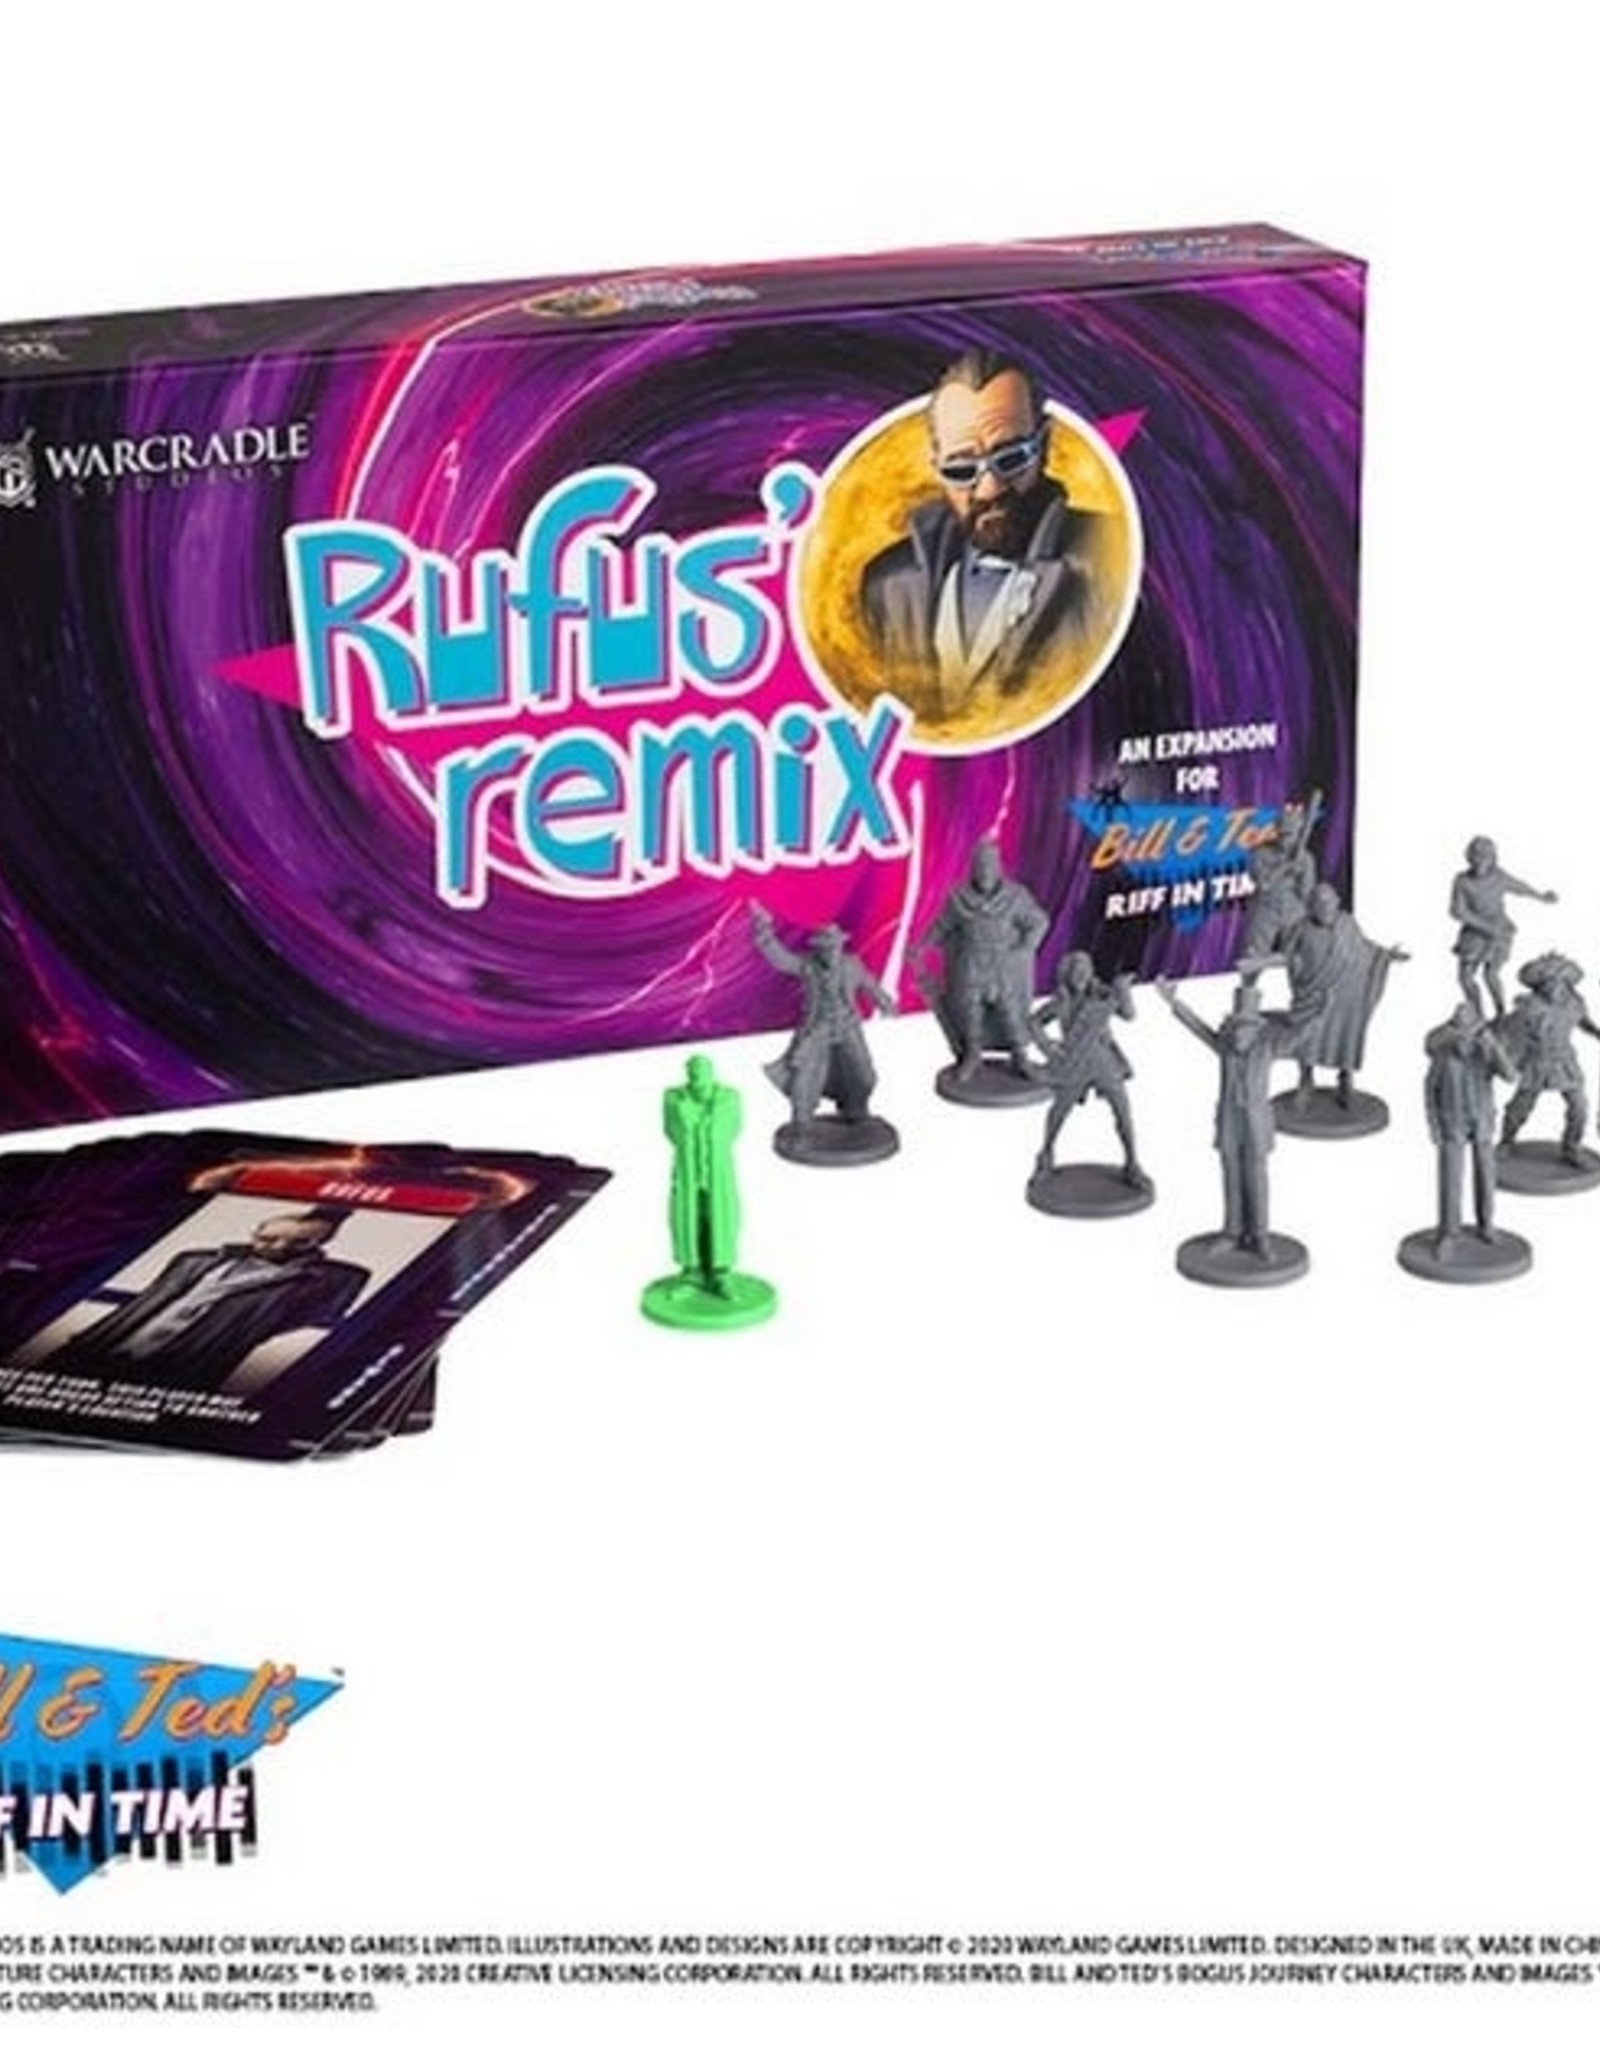 Rufus' Remis: Bill & Ted's Riff in Time Expansion